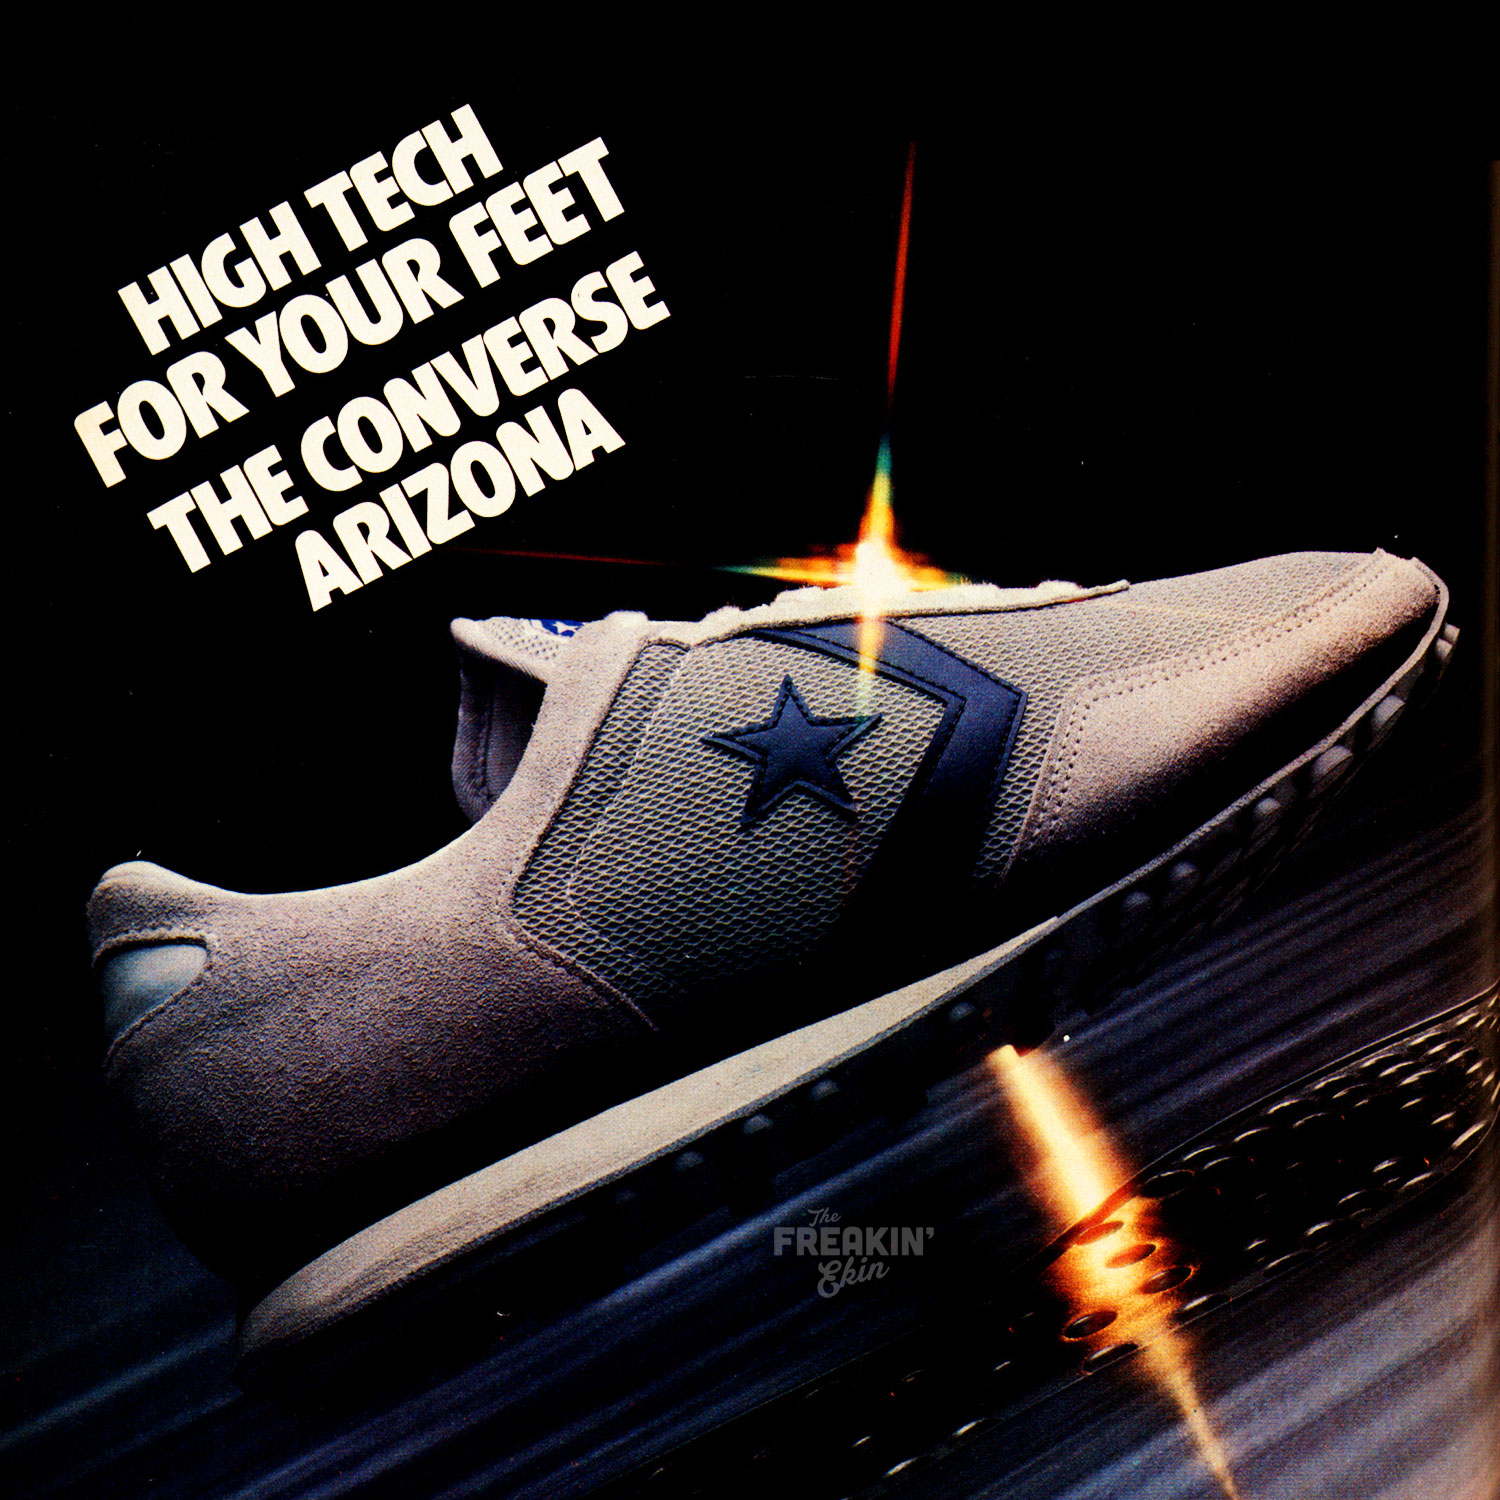 imponer Tahití parrilla  The Deffest®. A vintage and retro sneaker blog. — Converse Arizona 1980  vintage sneaker ad